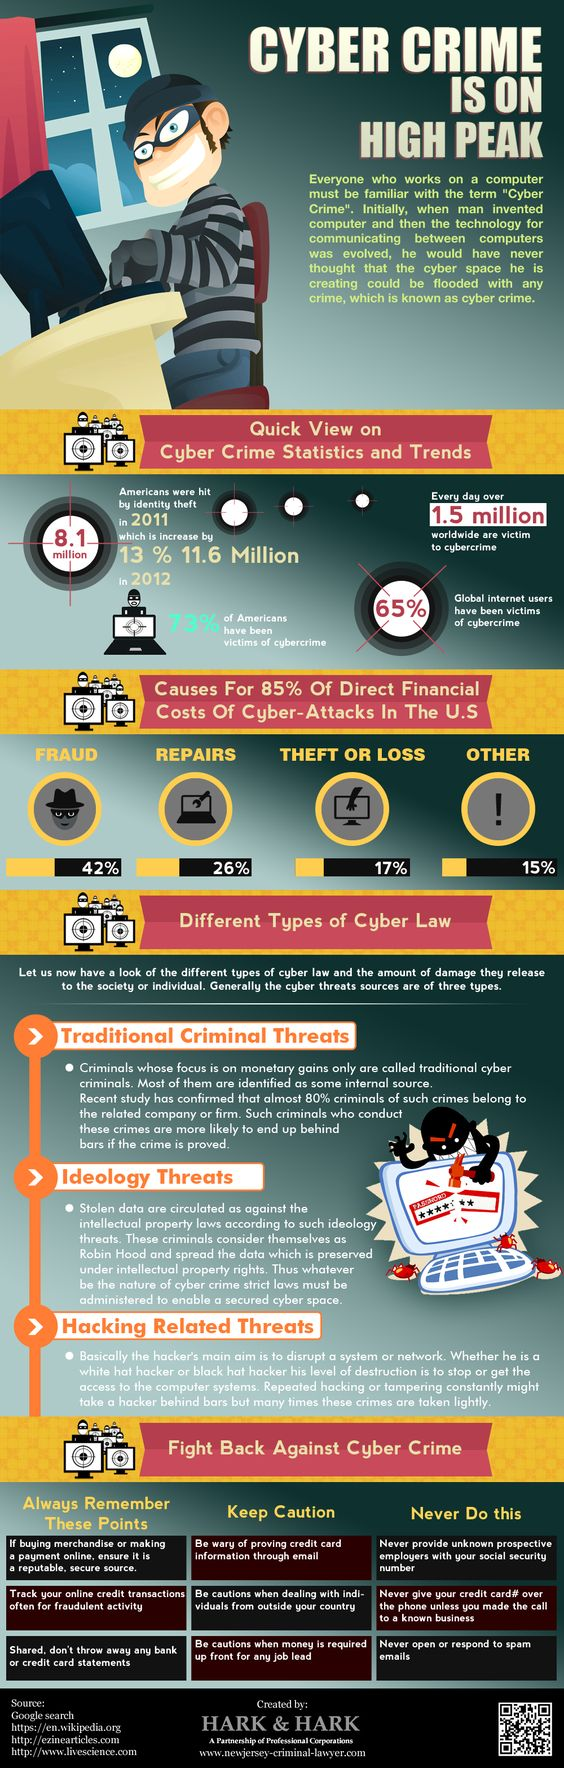 Cyber crime is famous word in digital or online world because there are lots of cyber crimes cases are increasing like phishing. There are different cyber laws are available to avoid cyber crimes. For more details log on.. http://www.newjersey-criminal-lawyer.com/: